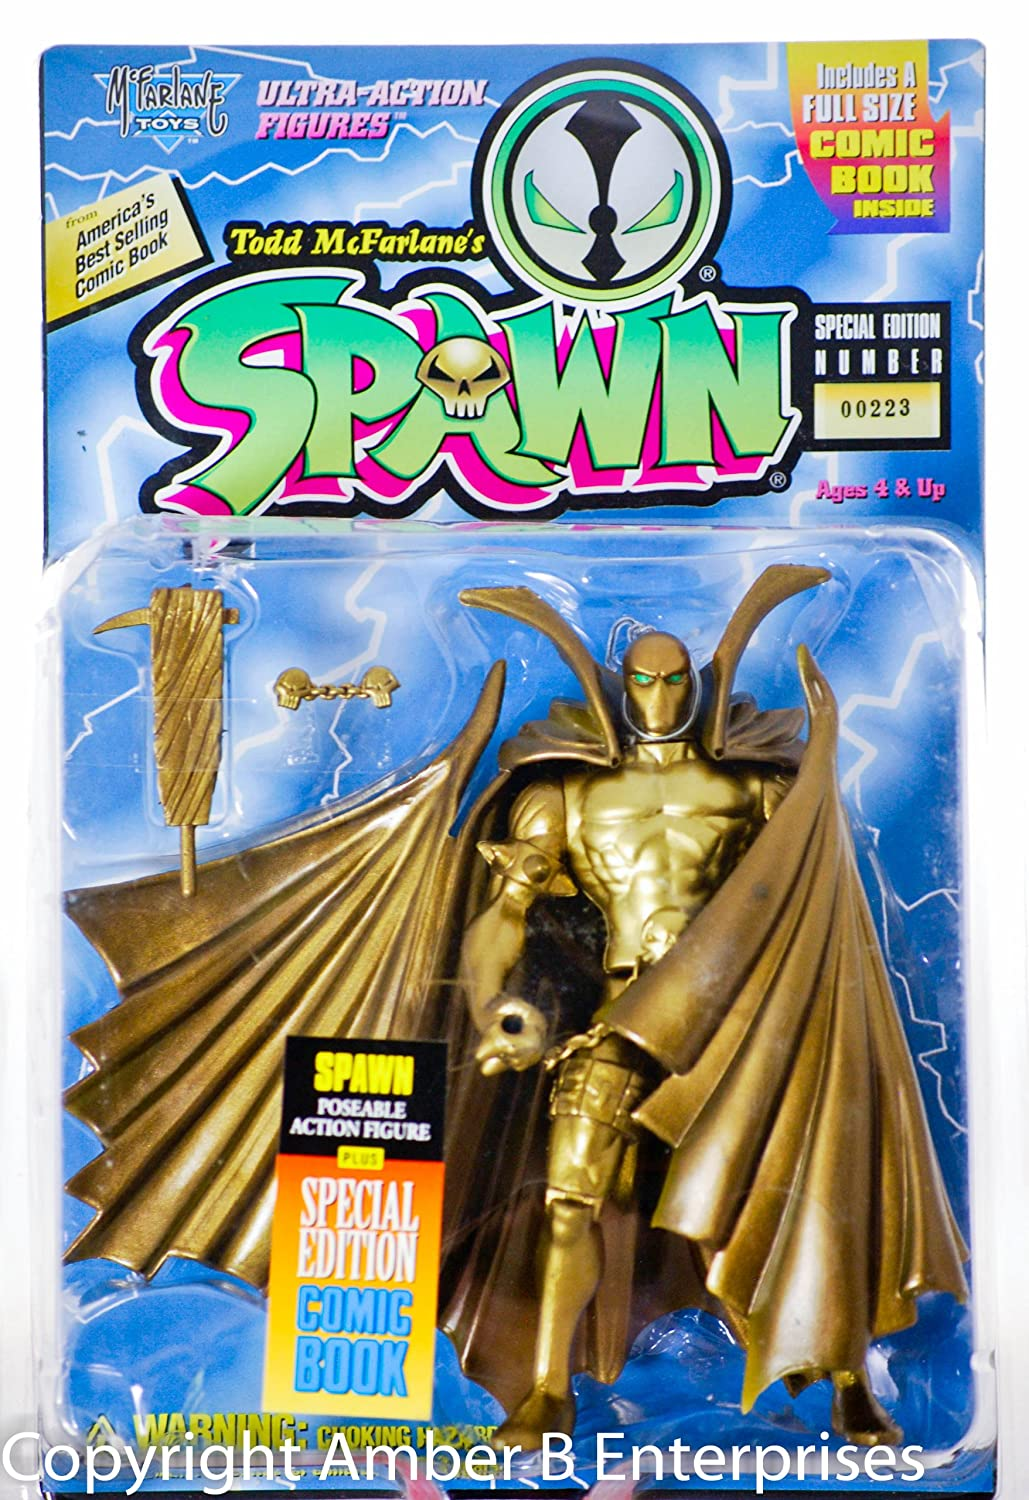 Spawn 1995 - McFarlane Toys Special Edition Number 00224 - Gold Ultra-Action Figure - Special Edition Comic Book Included - 6 Inches - Out of Production - New - Mint - Rare - Collectible